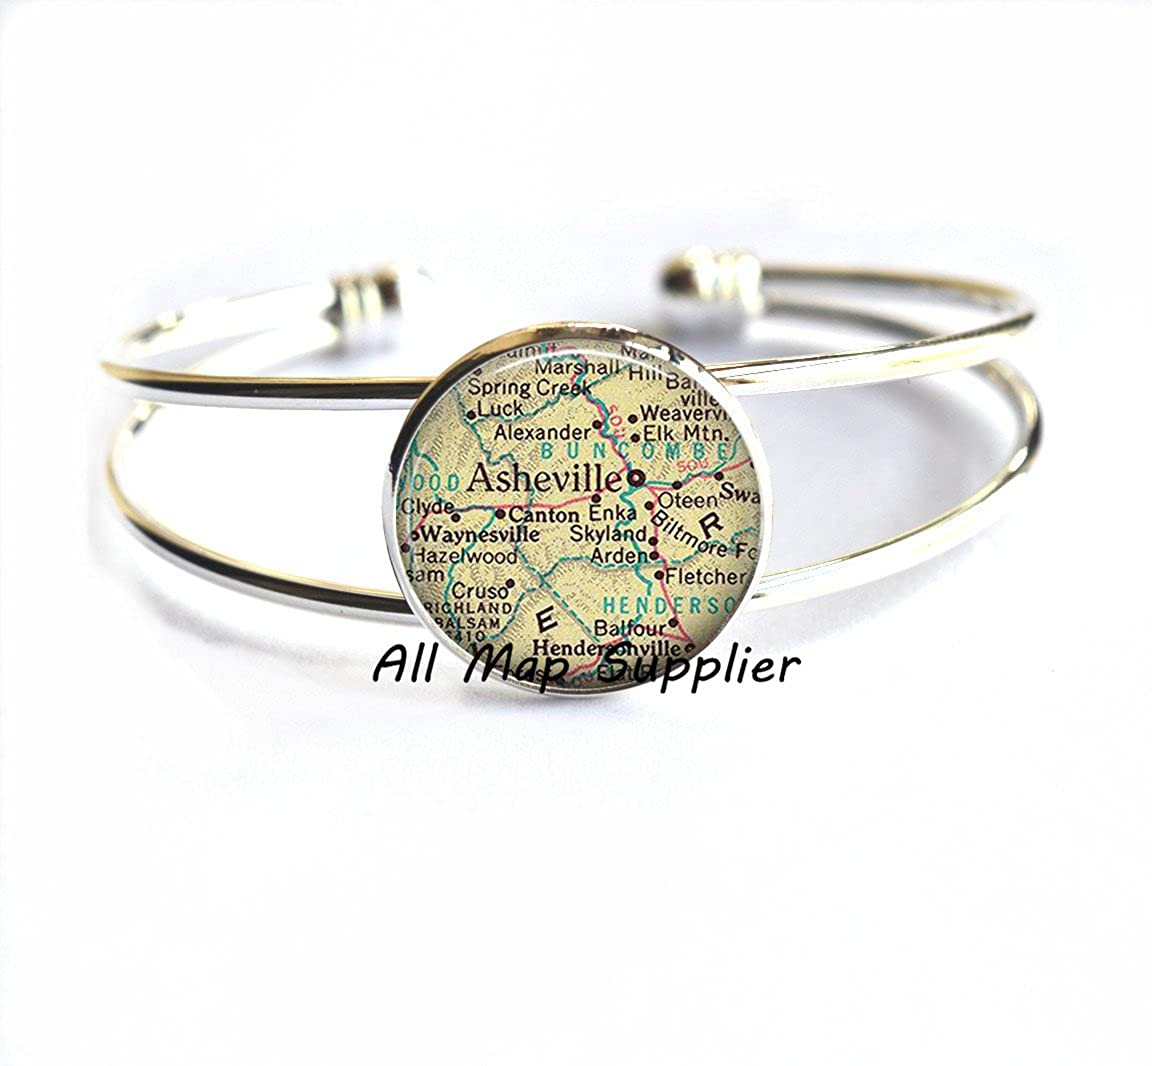 Asheville map Bracelets Asheville Bracelets,A0059 North Carolina map Bracelet Charming Bracelet Asheville map jewelry Asheville Bracelet